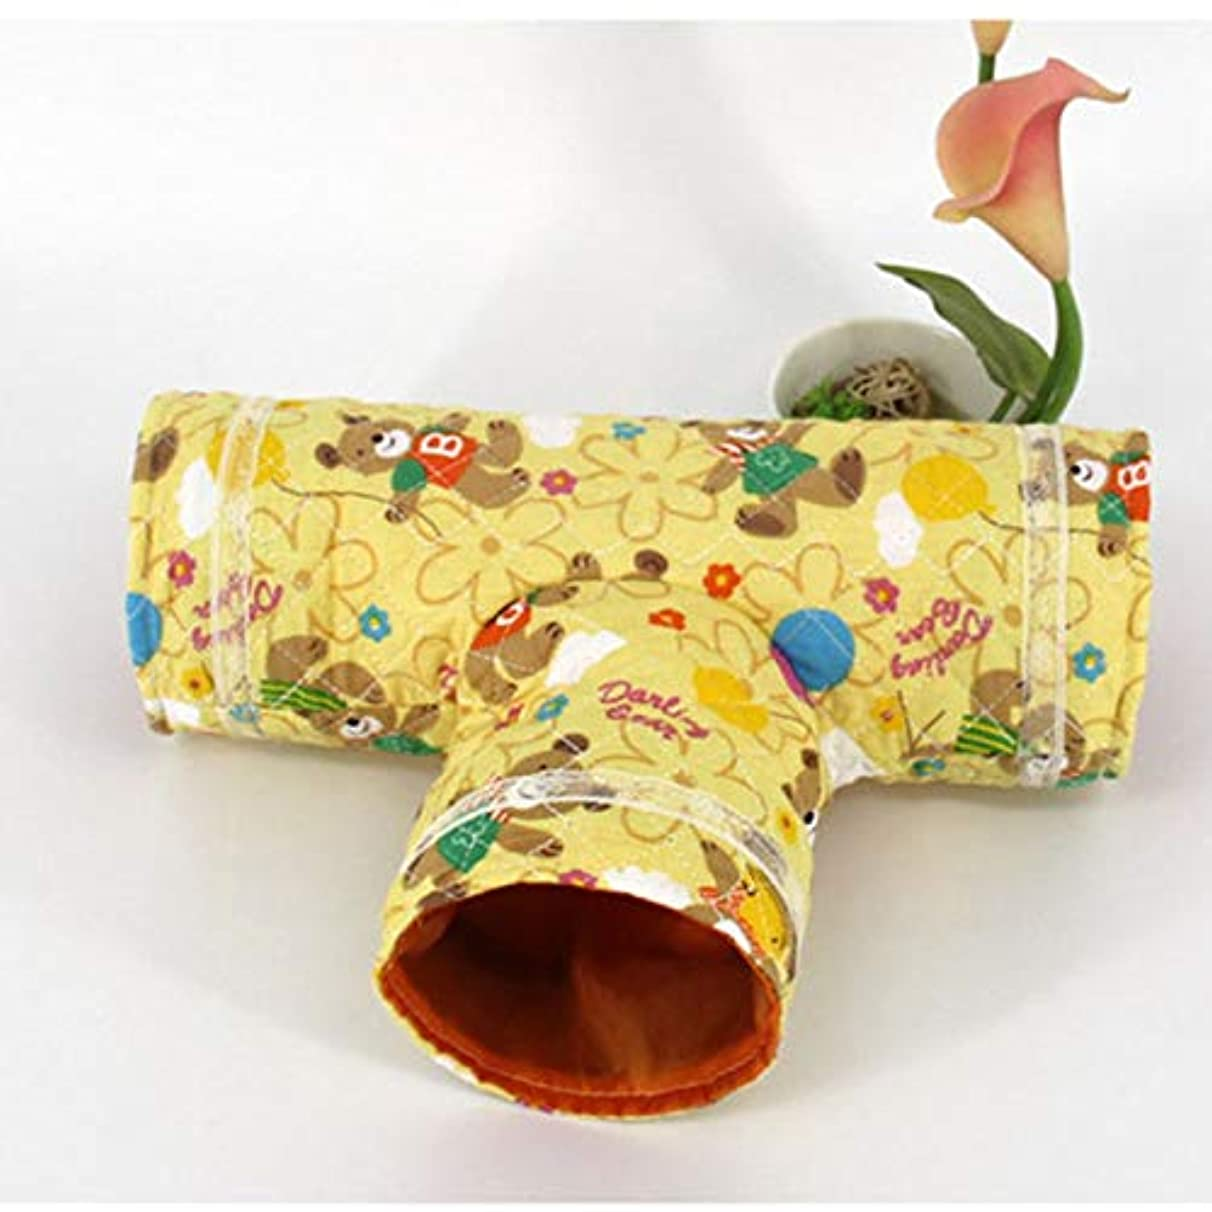 Tubes & Tunnels - Summer Small Pet Tunnel Hamster Guinea Pig Rabbit Tubes Three Channels Playing Toys Cages - Tubes Books Tunnels Tubes Tunnels Plush Rabbit Tunnel House Guinea Hamster Pet